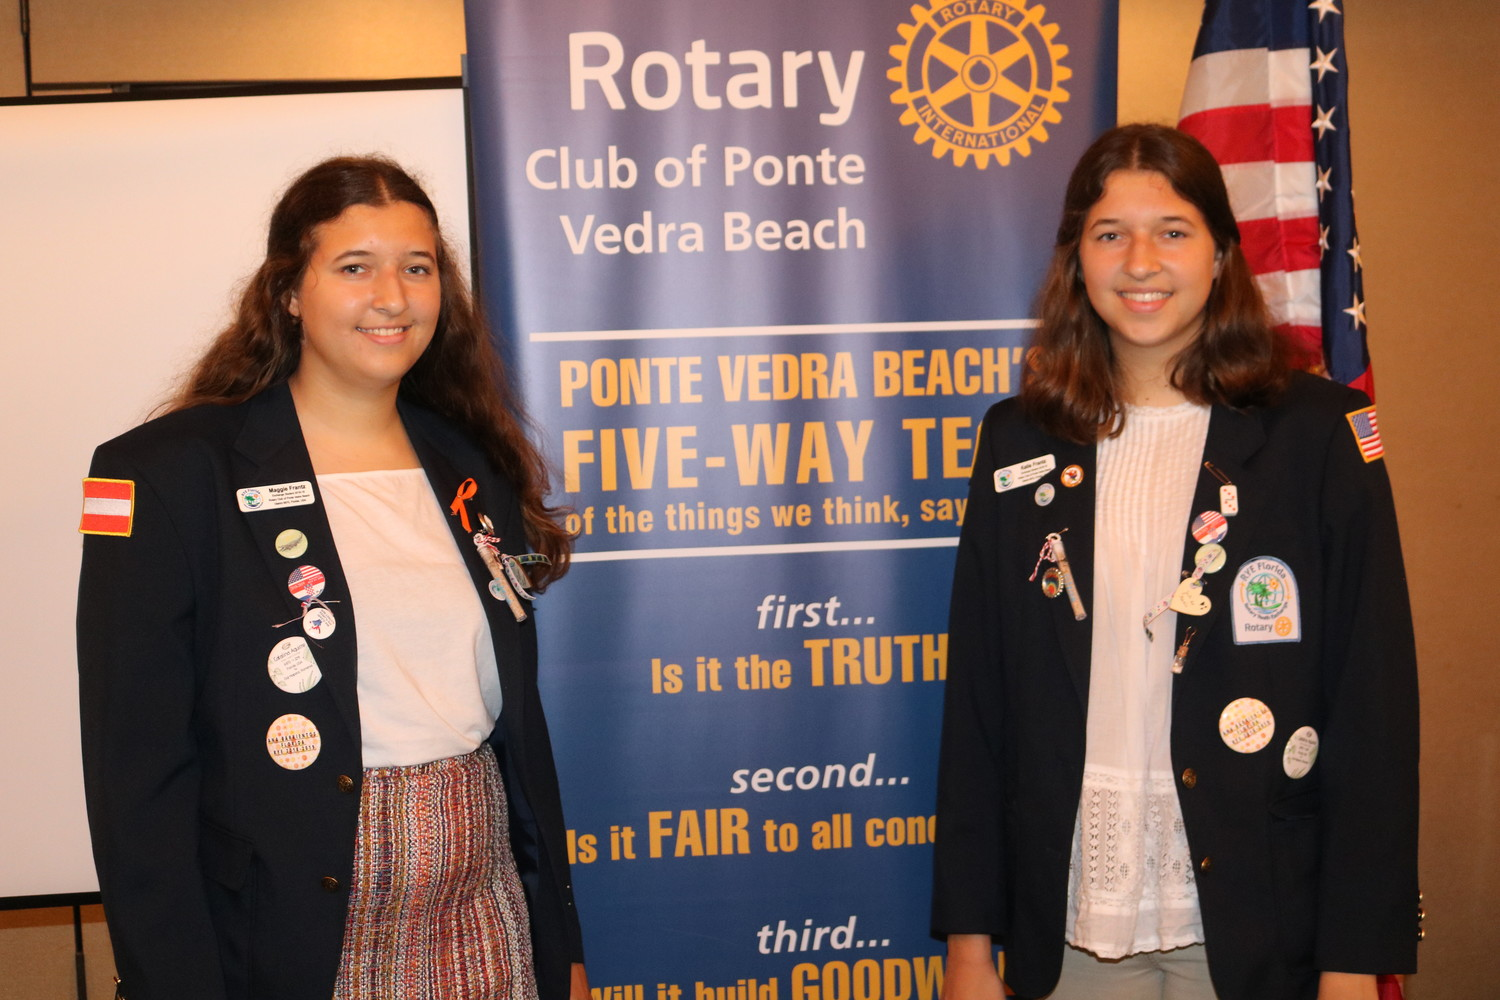 Ponte Vedra High School students and twins Maggie and Katie Frantz are spending the next academic year in Vienna, Austria and Joinville, Brazil as members of the Rotary Youth Exchange program.